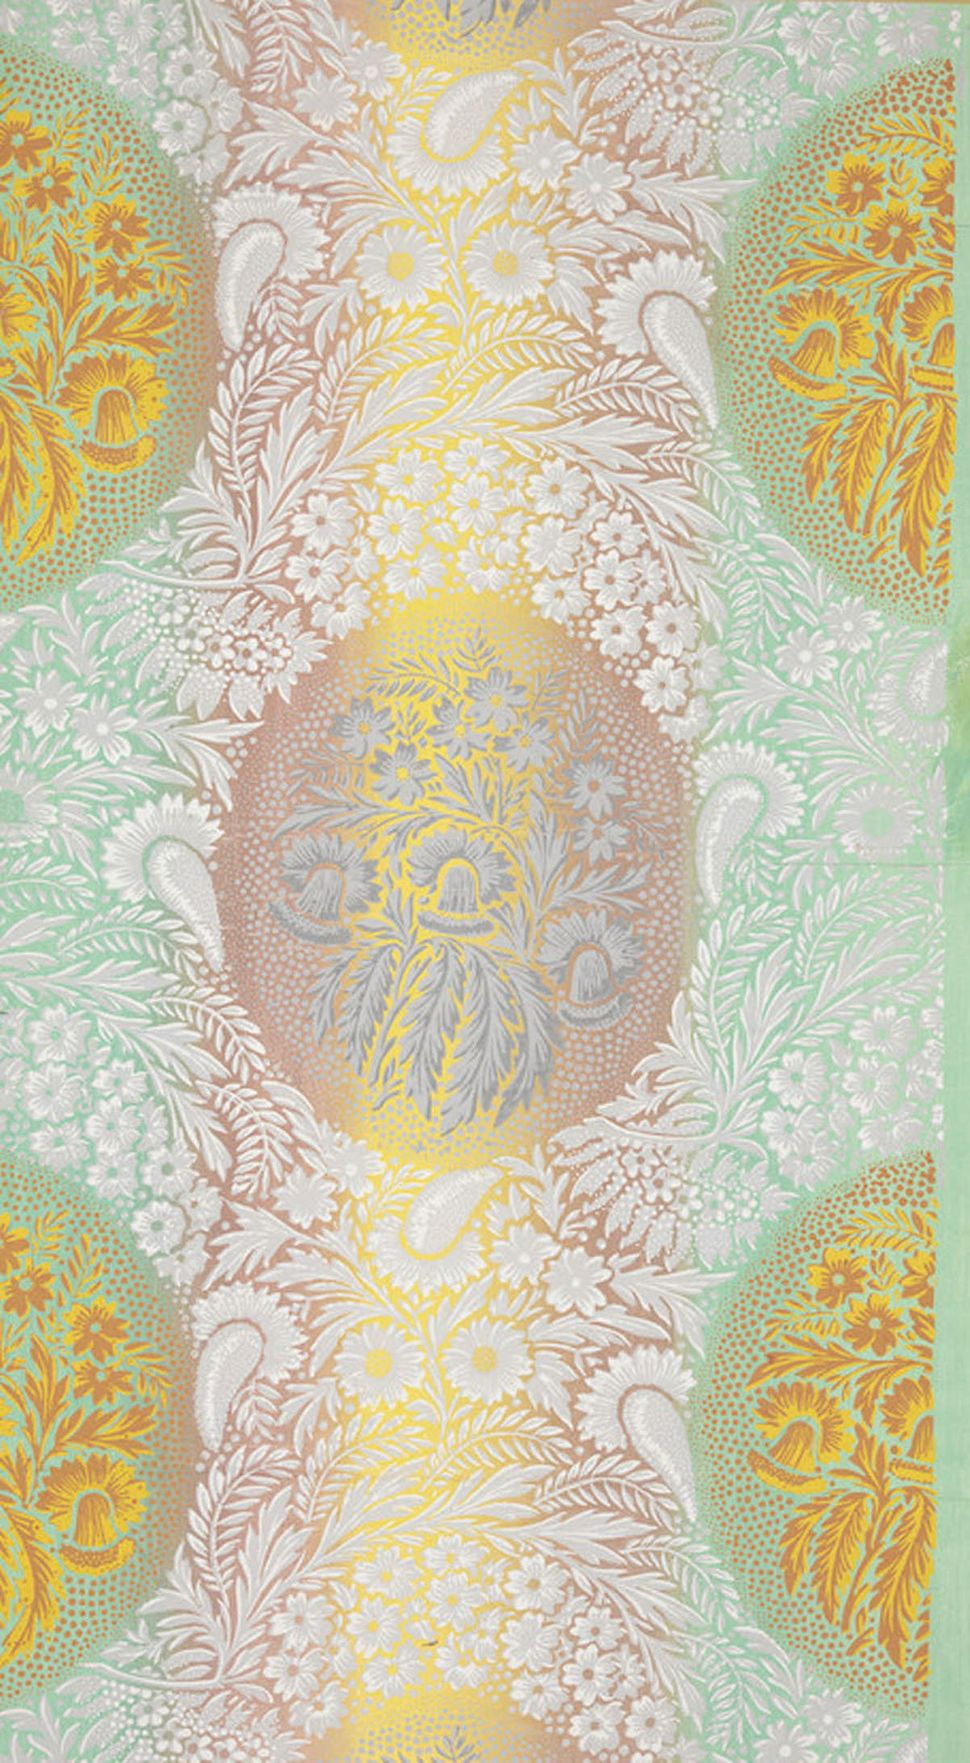 Unused sample. Large foliate pattern with large medallions comprised of a lacy floral background pattern. Printed in white, t